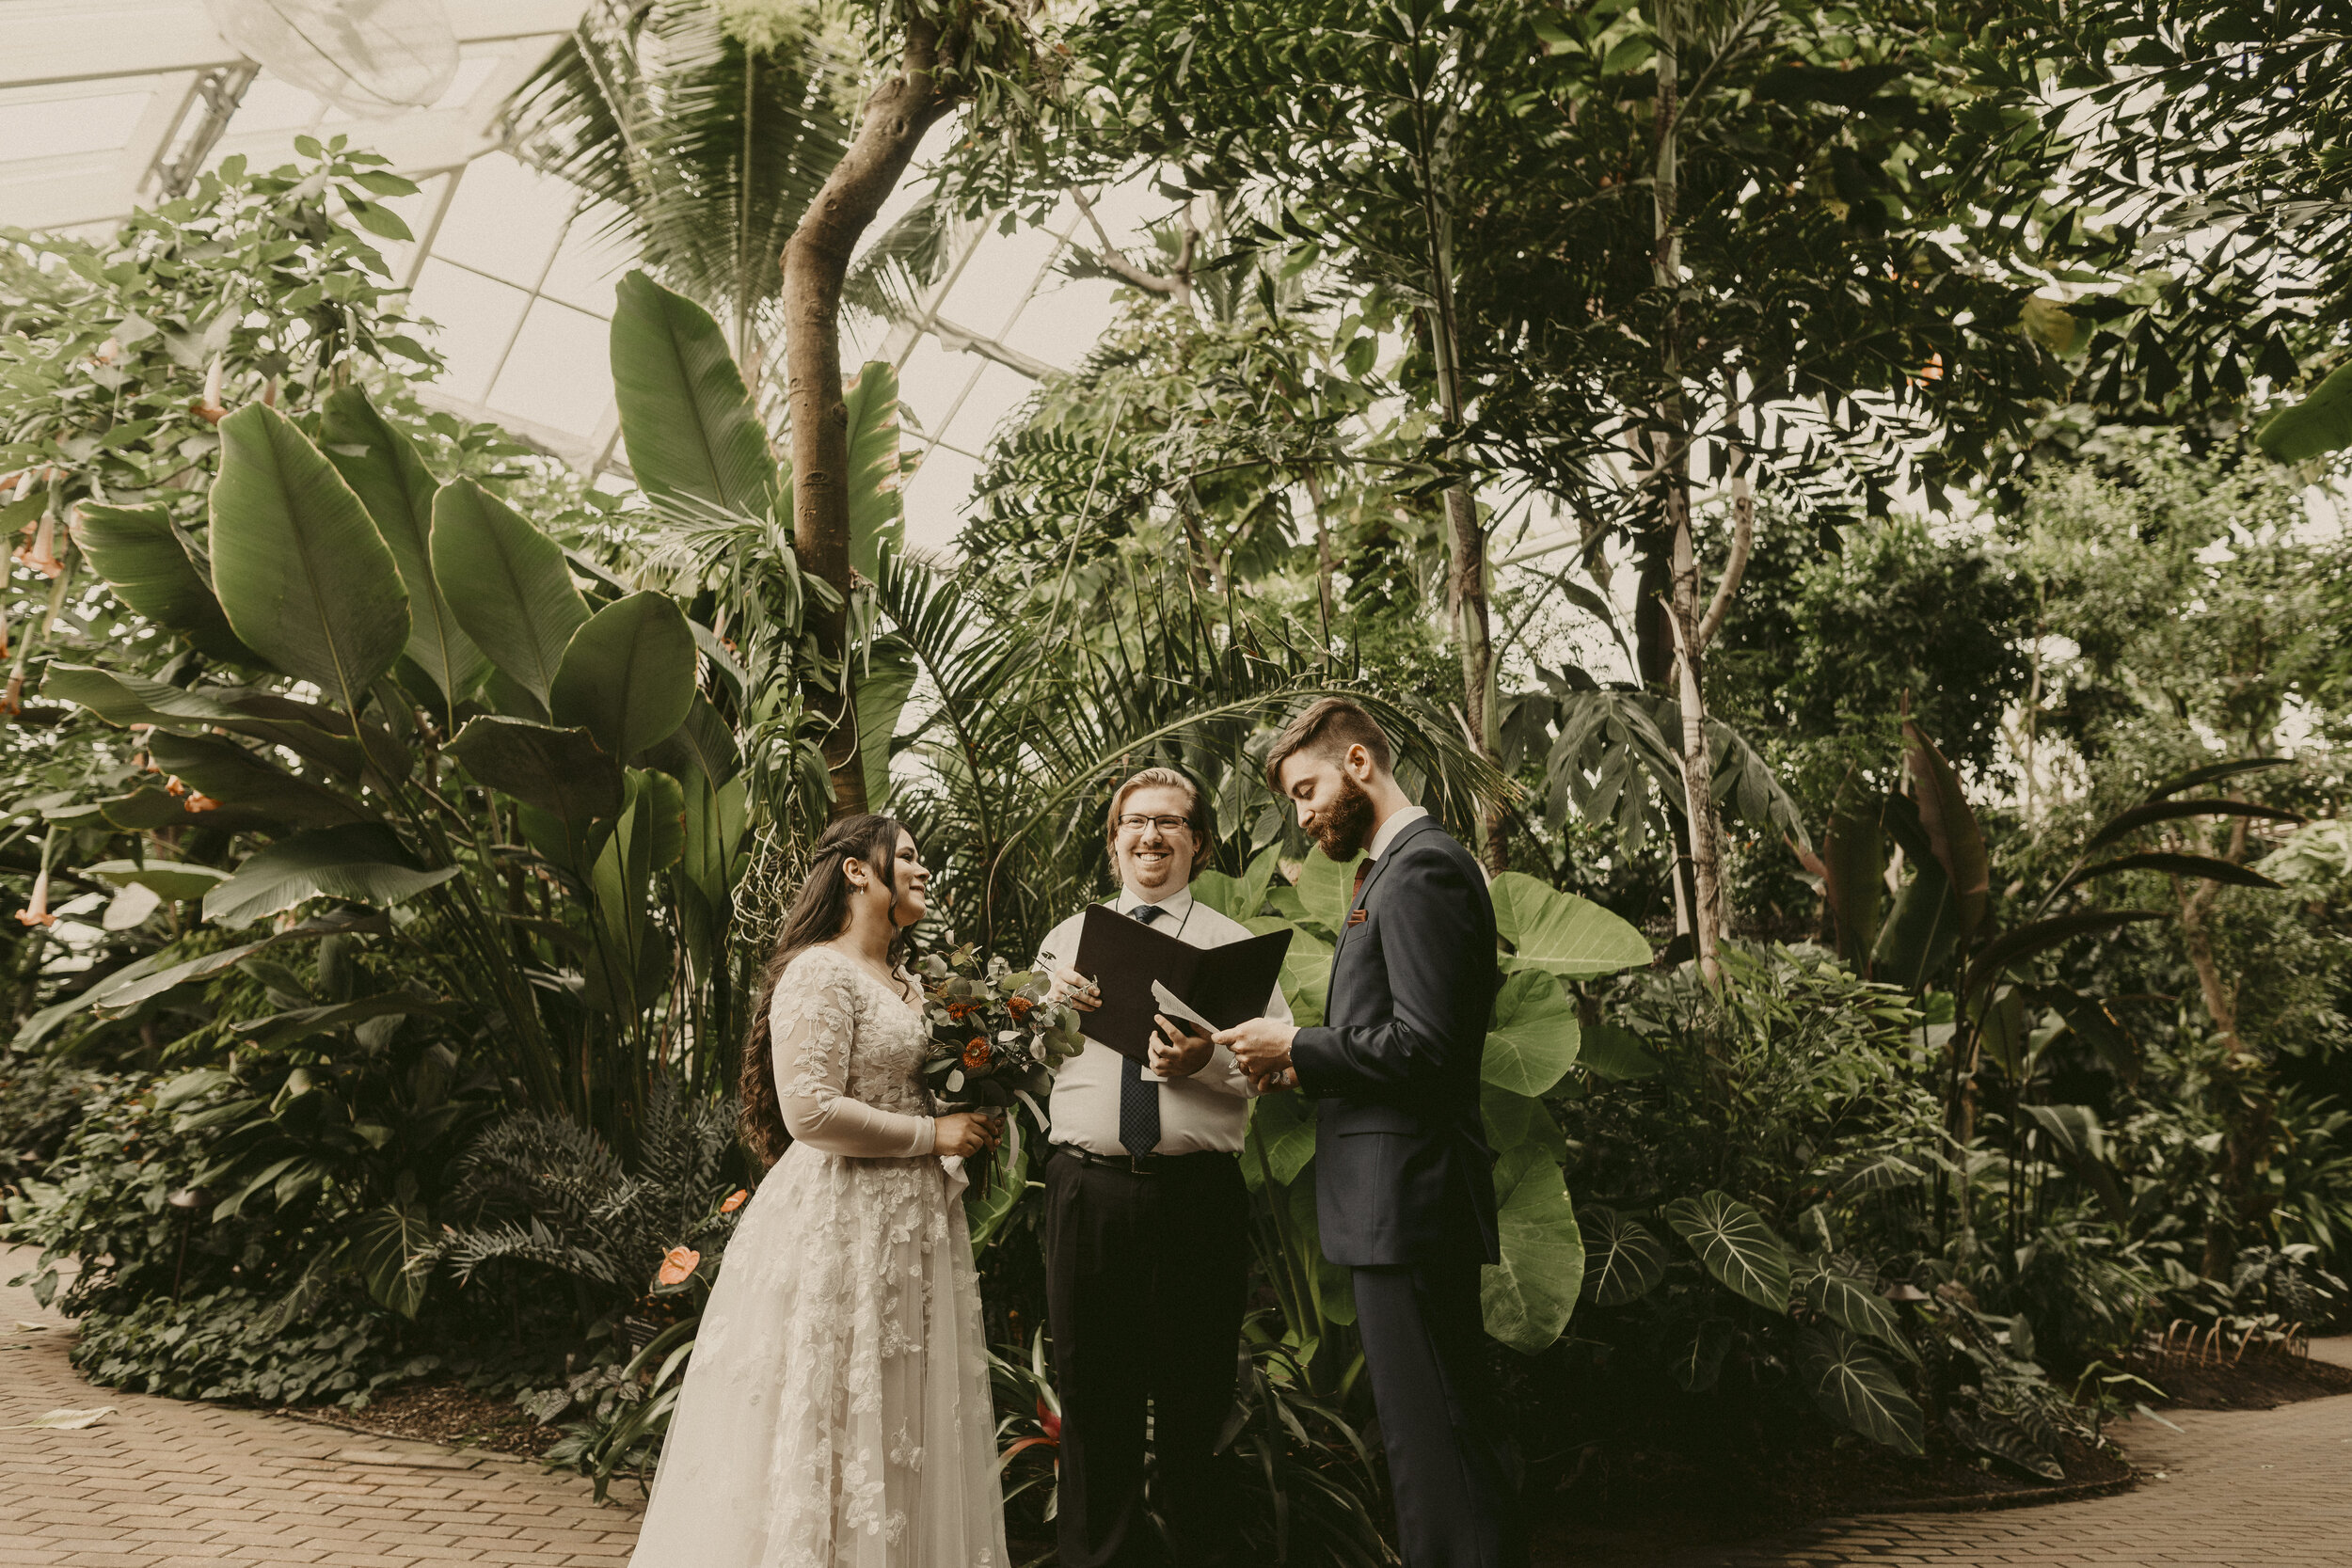 Venue Ideas You Haven T Thought Of Wisconsin Based Wedding And Elopement Photography Purely Brooke Photography I have performed over 1200 wedding ceremonies since 1992. venue ideas you haven t thought of wisconsin based wedding and elopement photography purely brooke photography